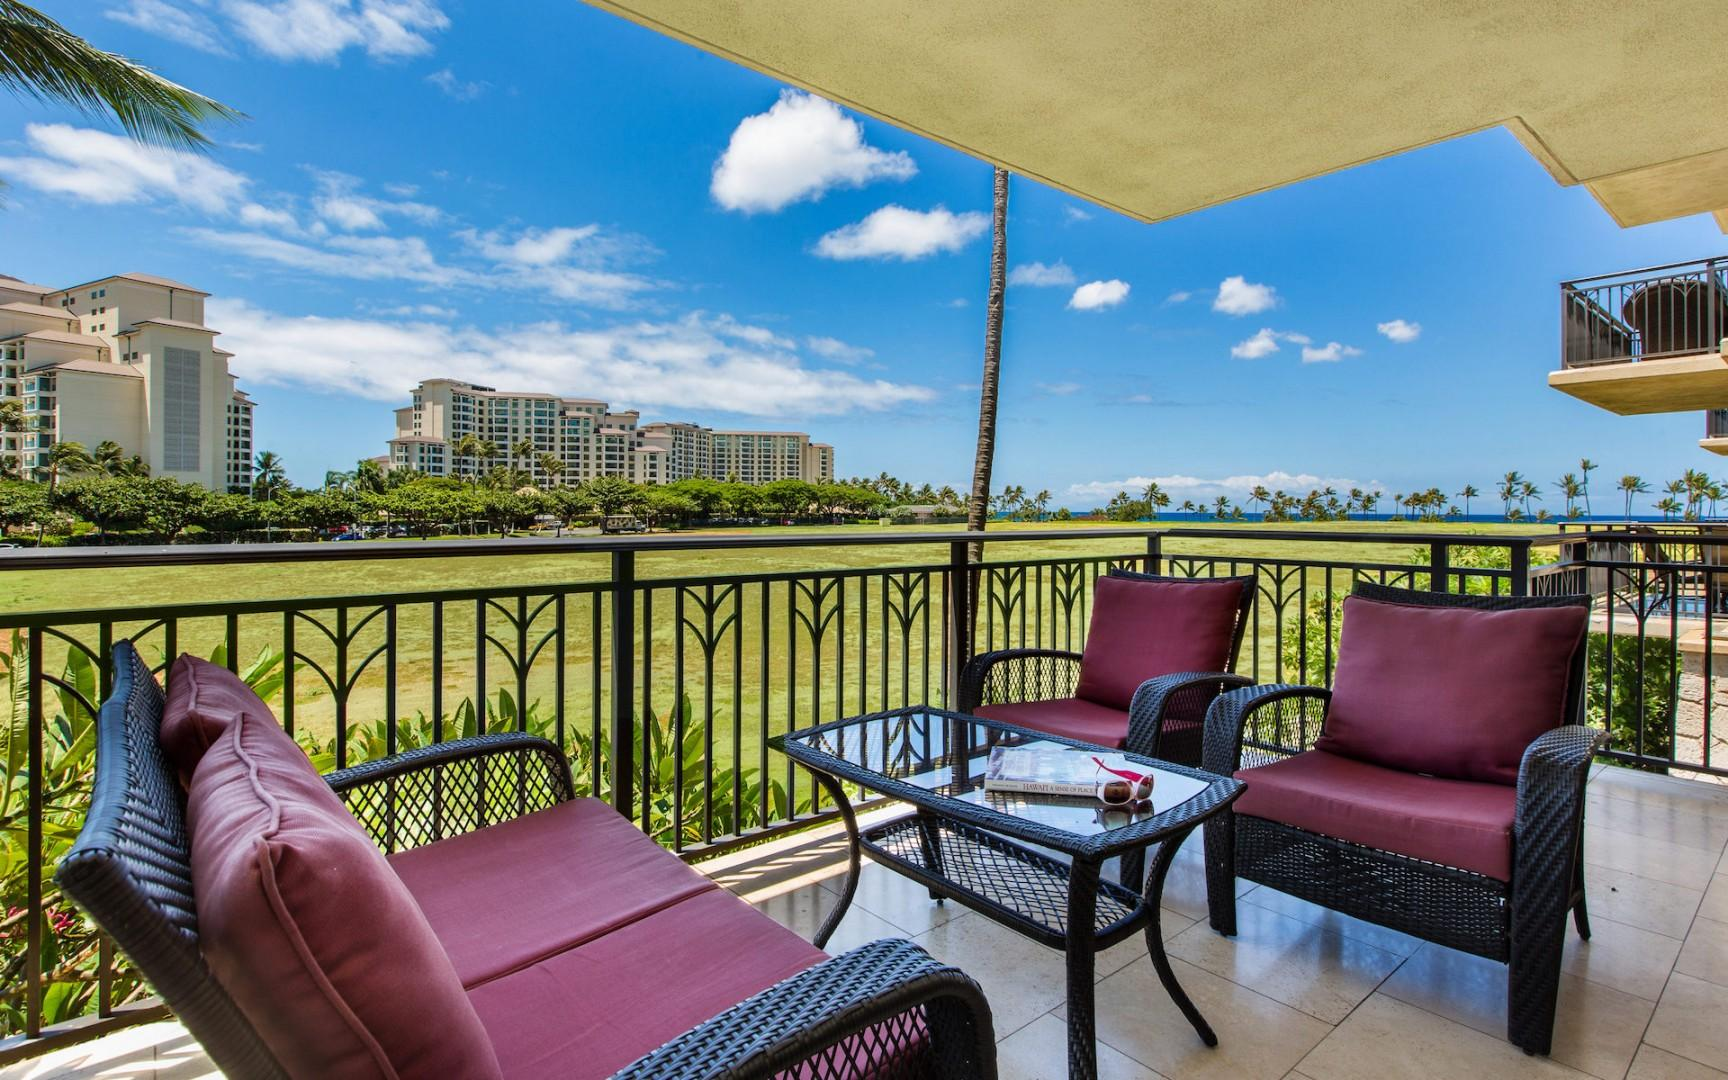 Enjoy a sunny breakfast or relaxing afternoon on the spacious lanai